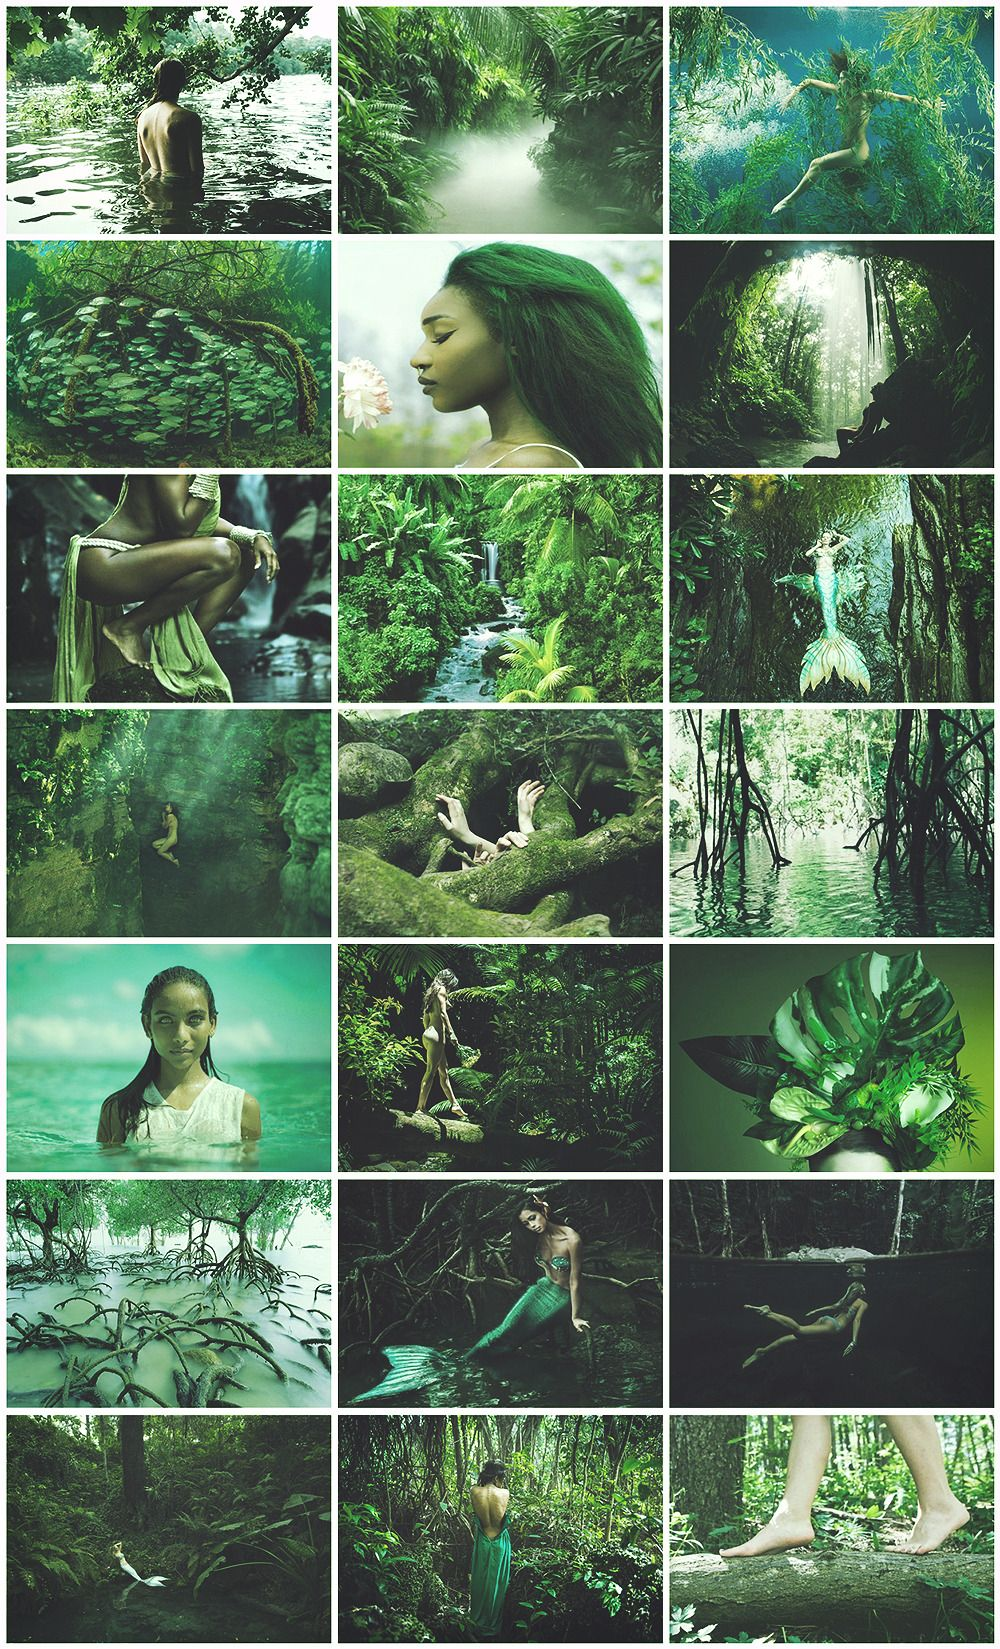 Rainforest Mermaid aesthetic for @kissesfromlife | Witchy Woman in